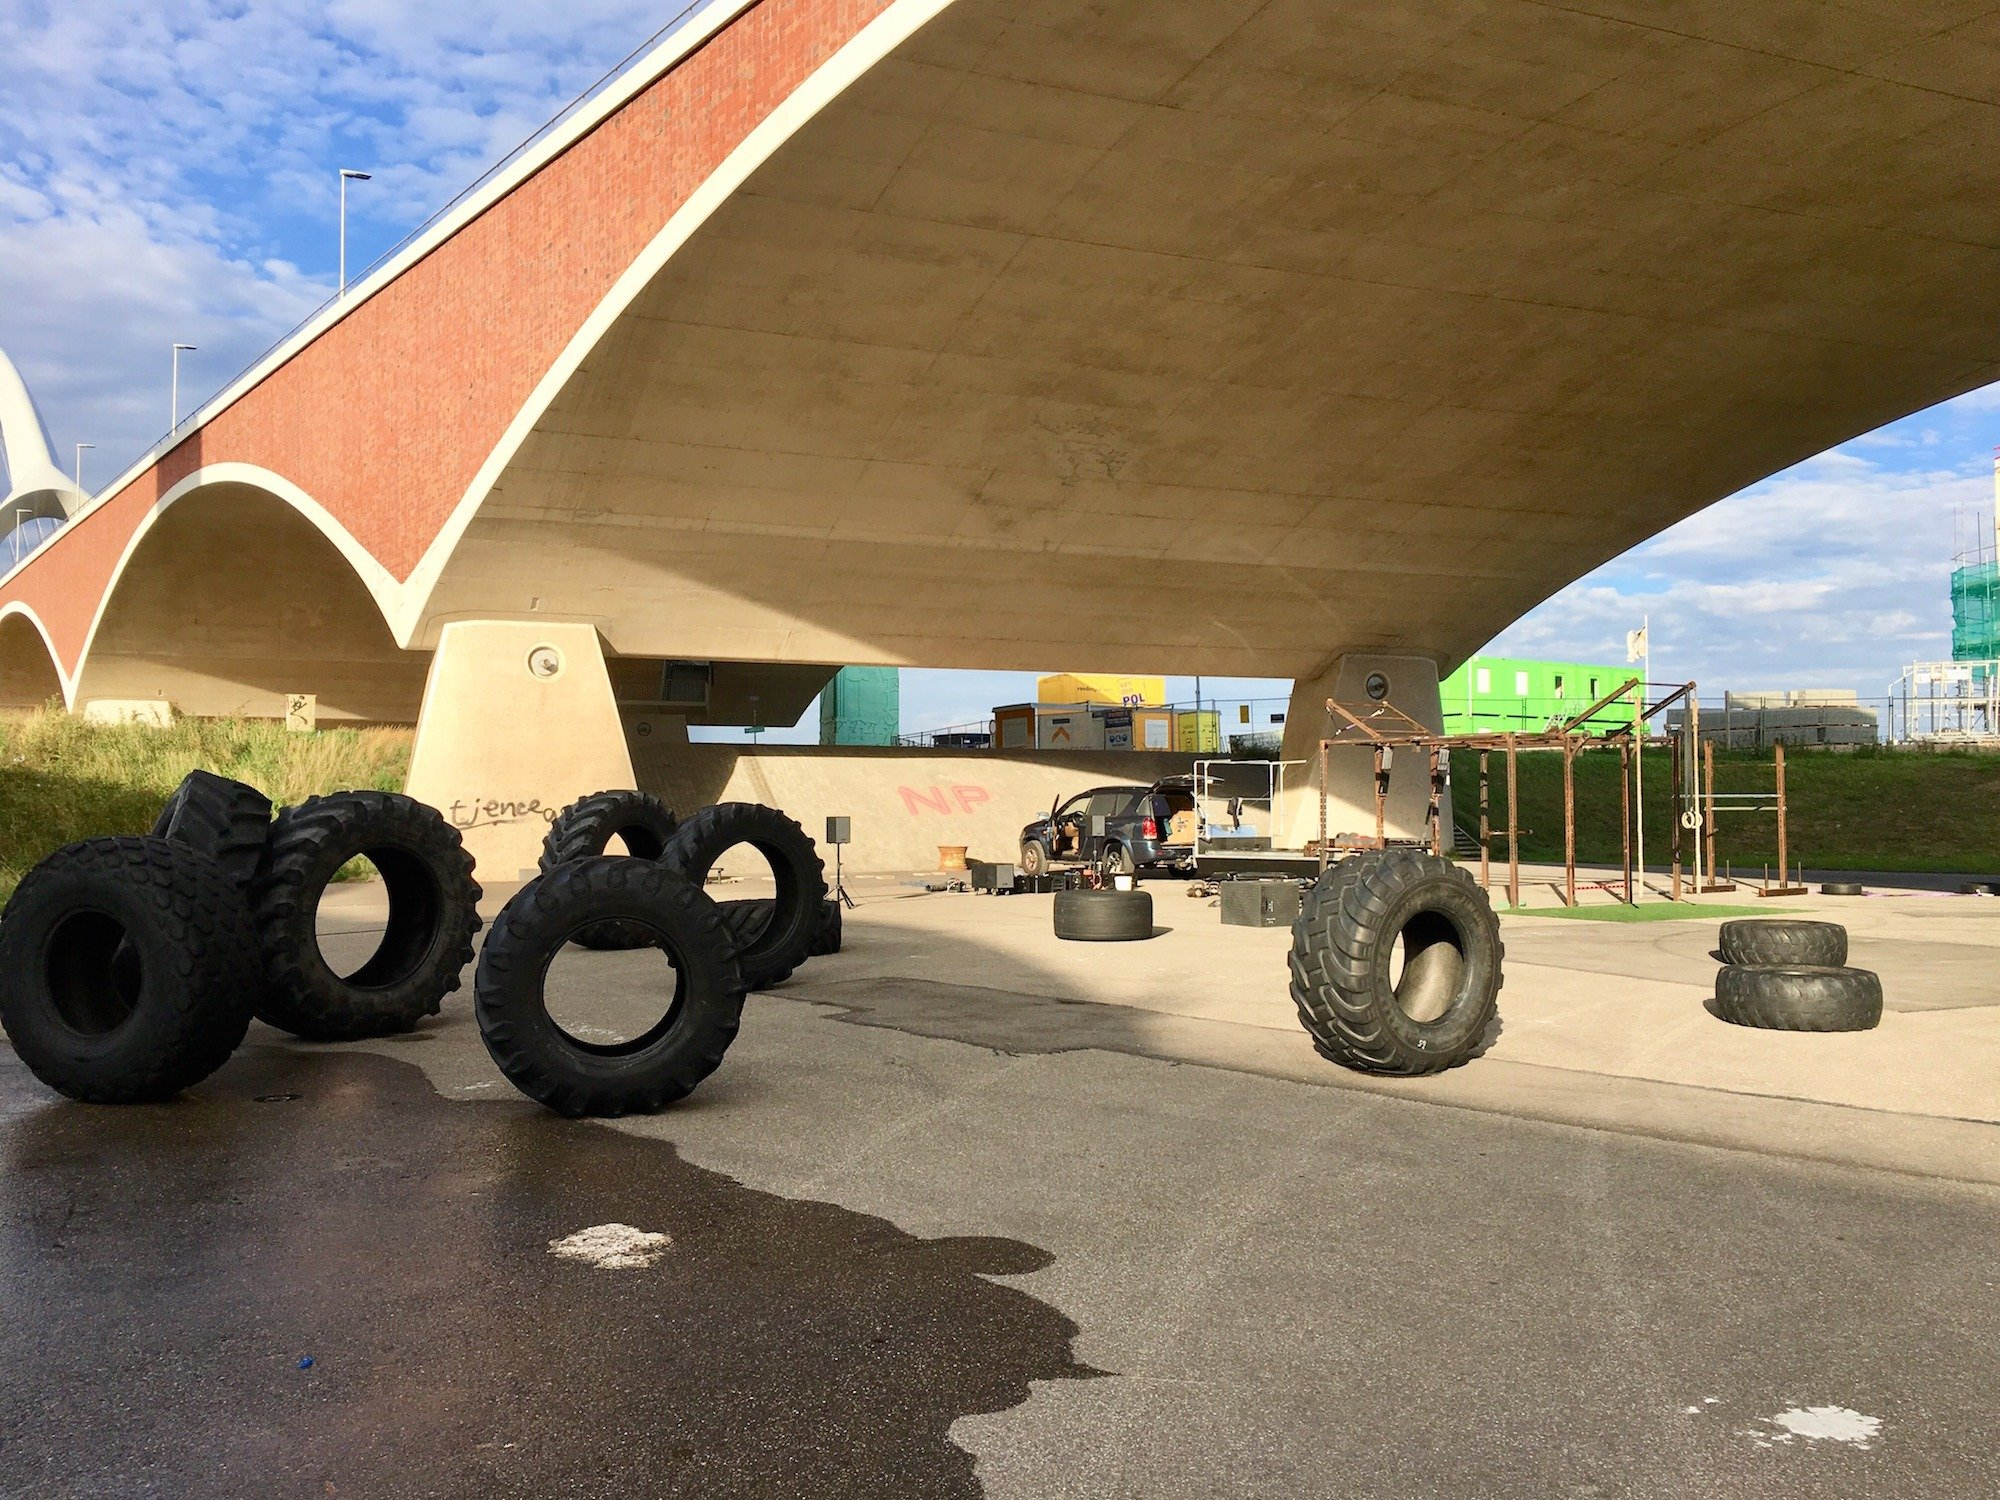 NYMA OUTDOOR GYM 09-09-2018